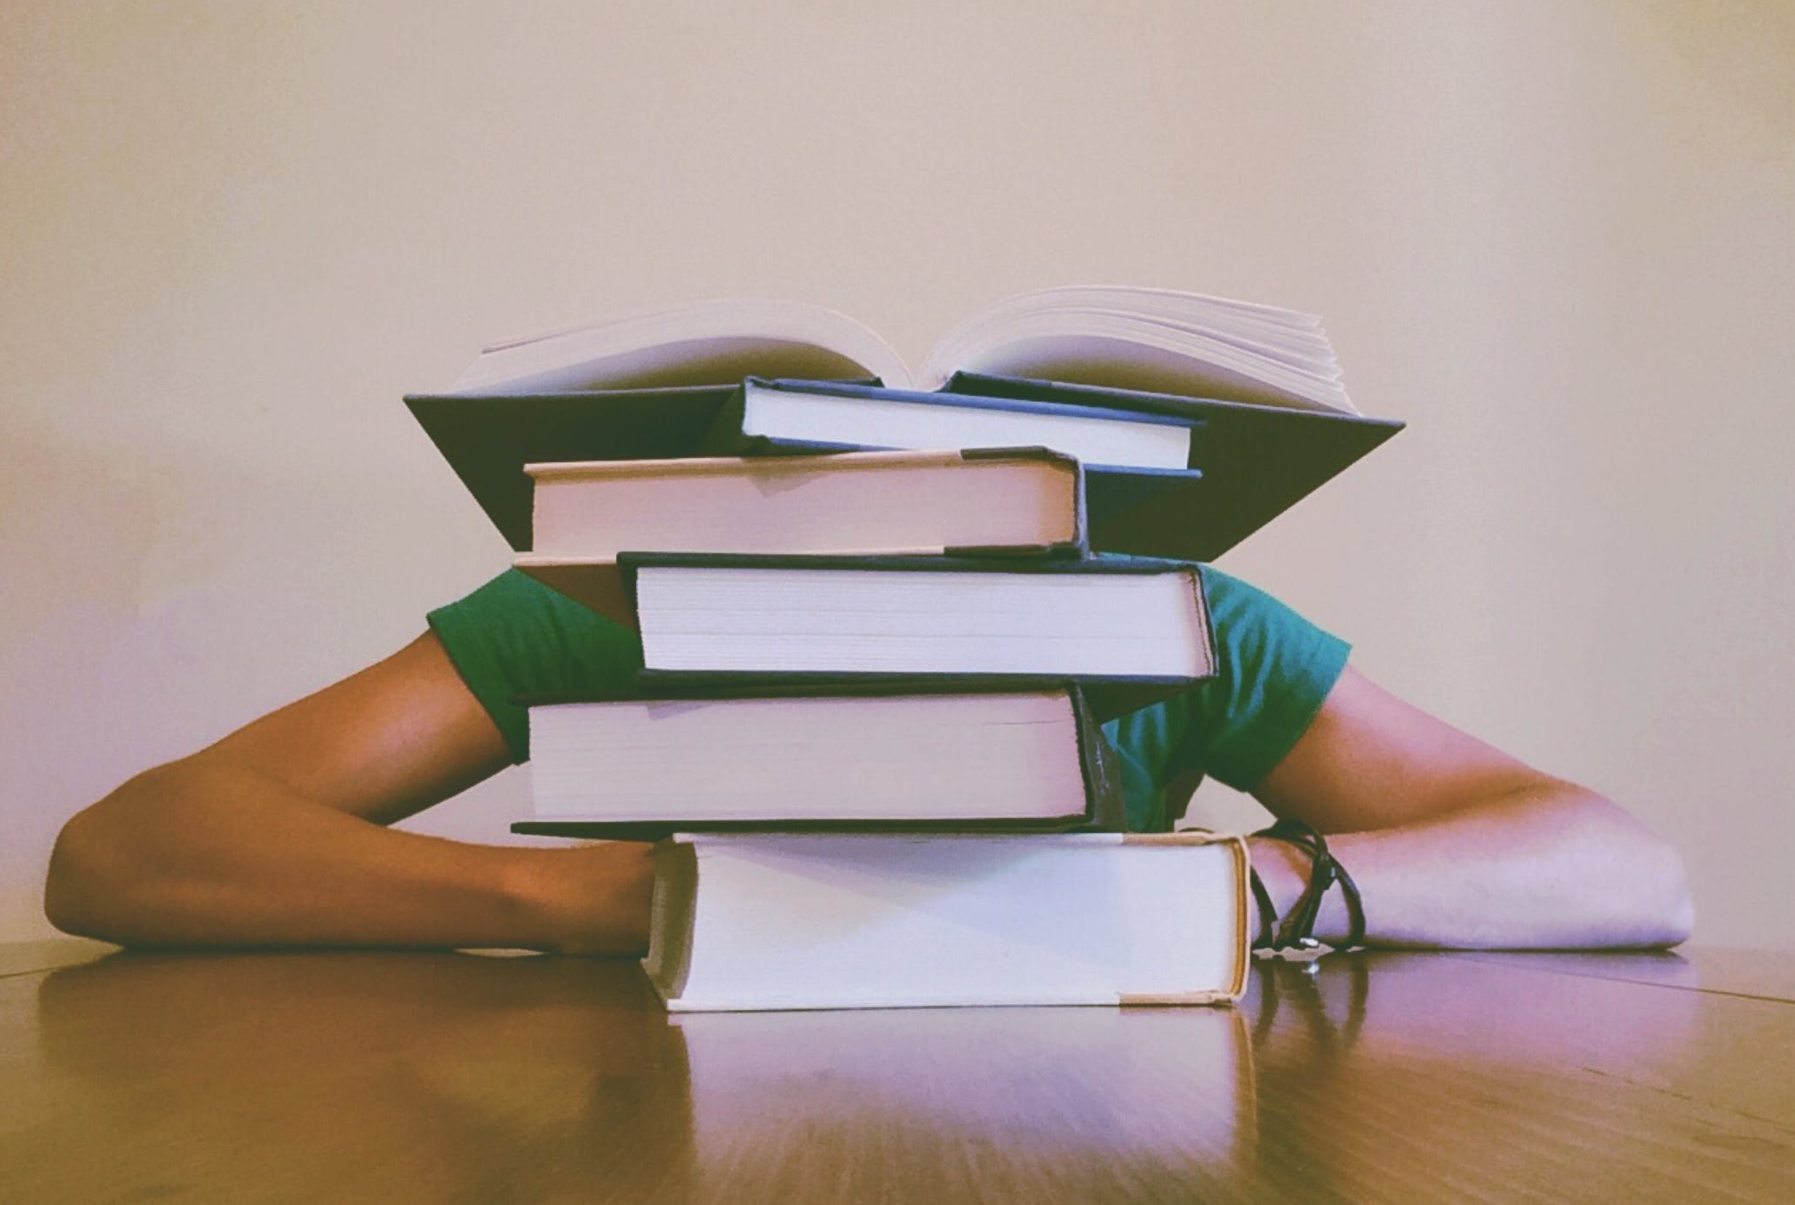 Stay tuned for my next post: learning through osmosis.